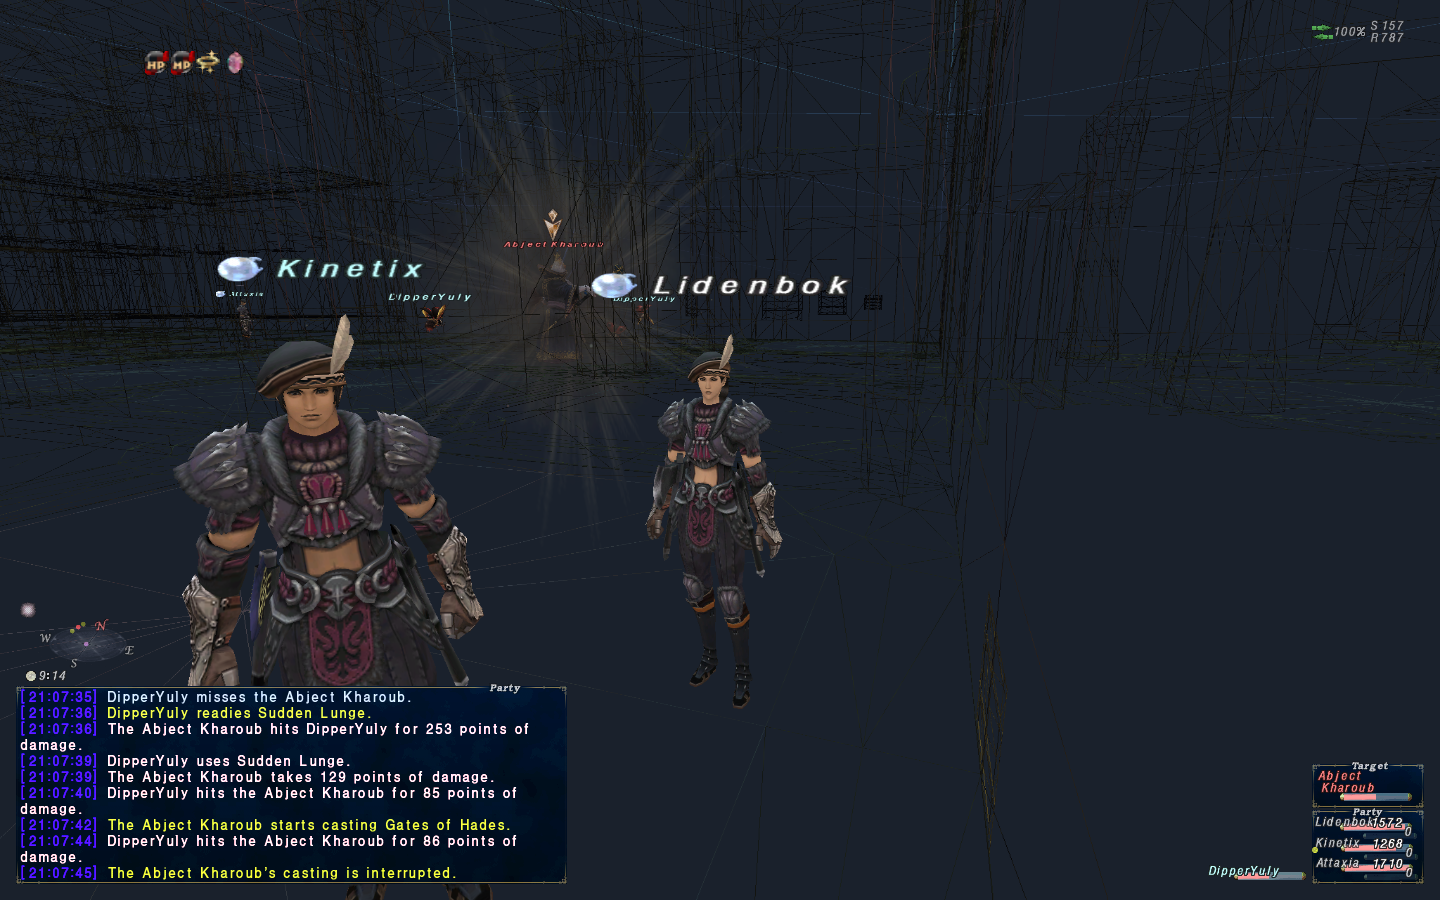 lidenbokvalour ffxi more makes kill-all floors bloodbath luck cleaving with might have been before they than joke even next find continue nyzul isle will pack definitely help better gear mitigate